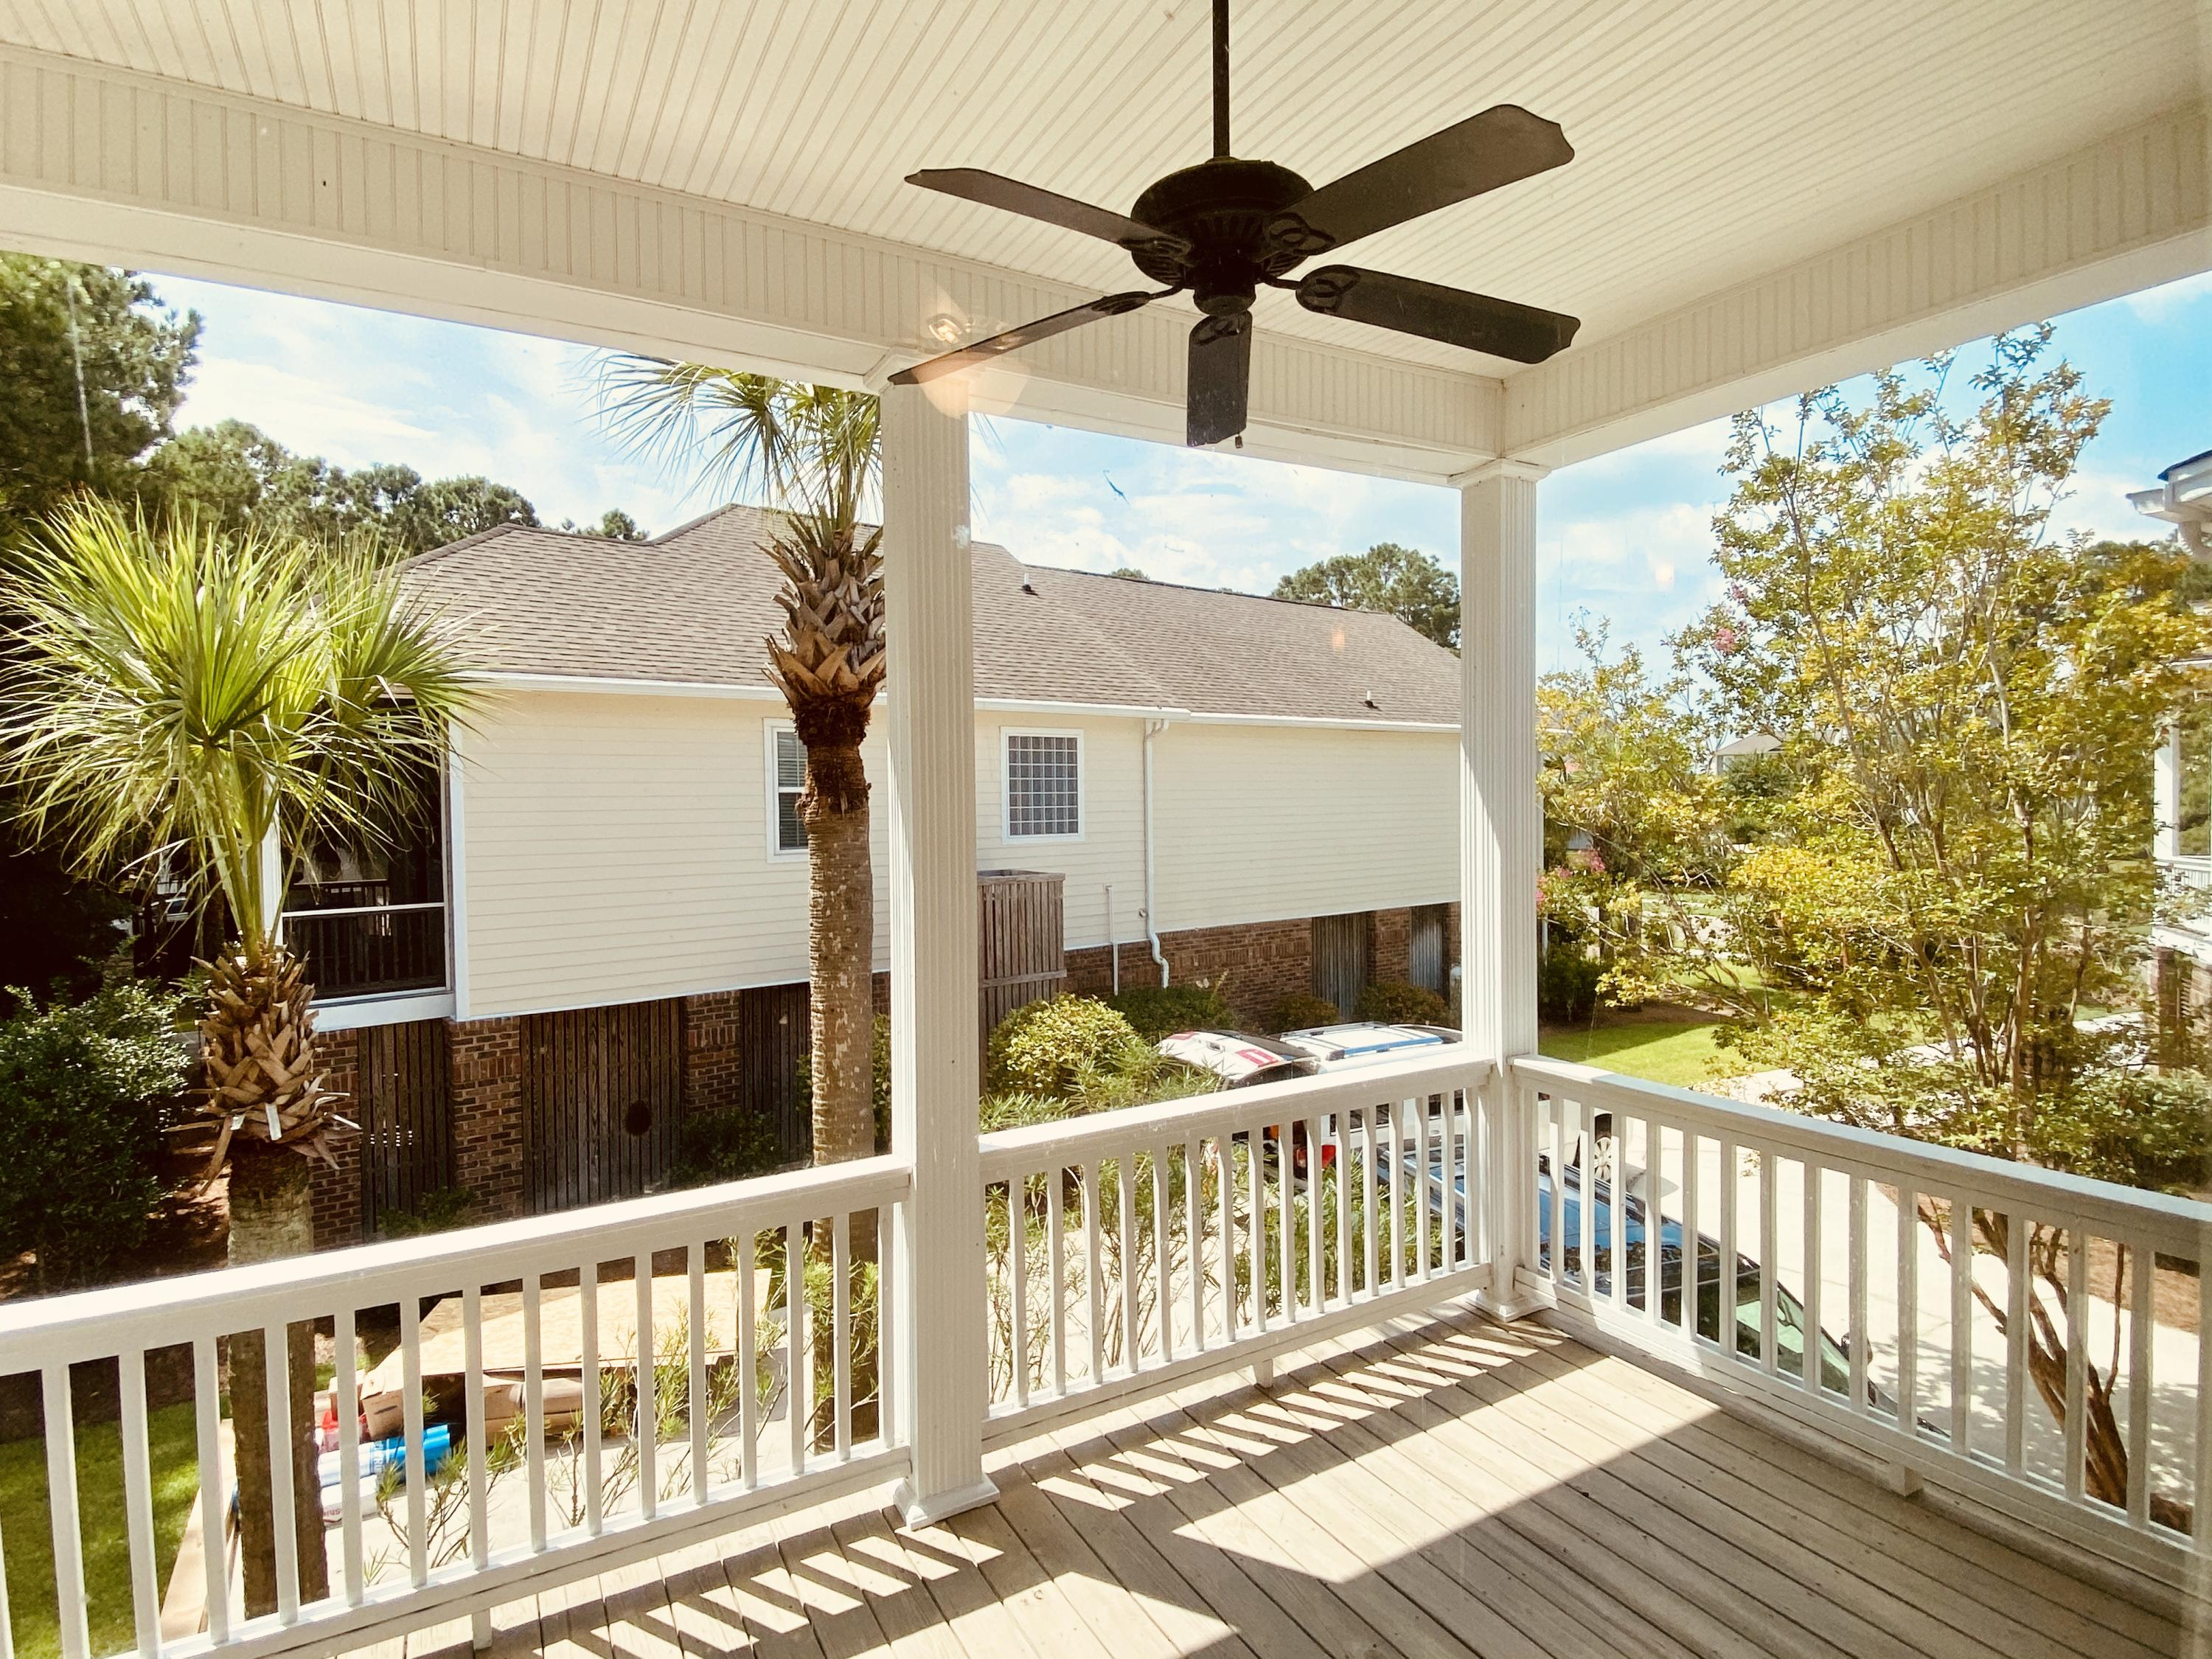 Rivertowne Country Club Homes For Sale - 1721 Rivertowne Country Club, Mount Pleasant, SC - 47